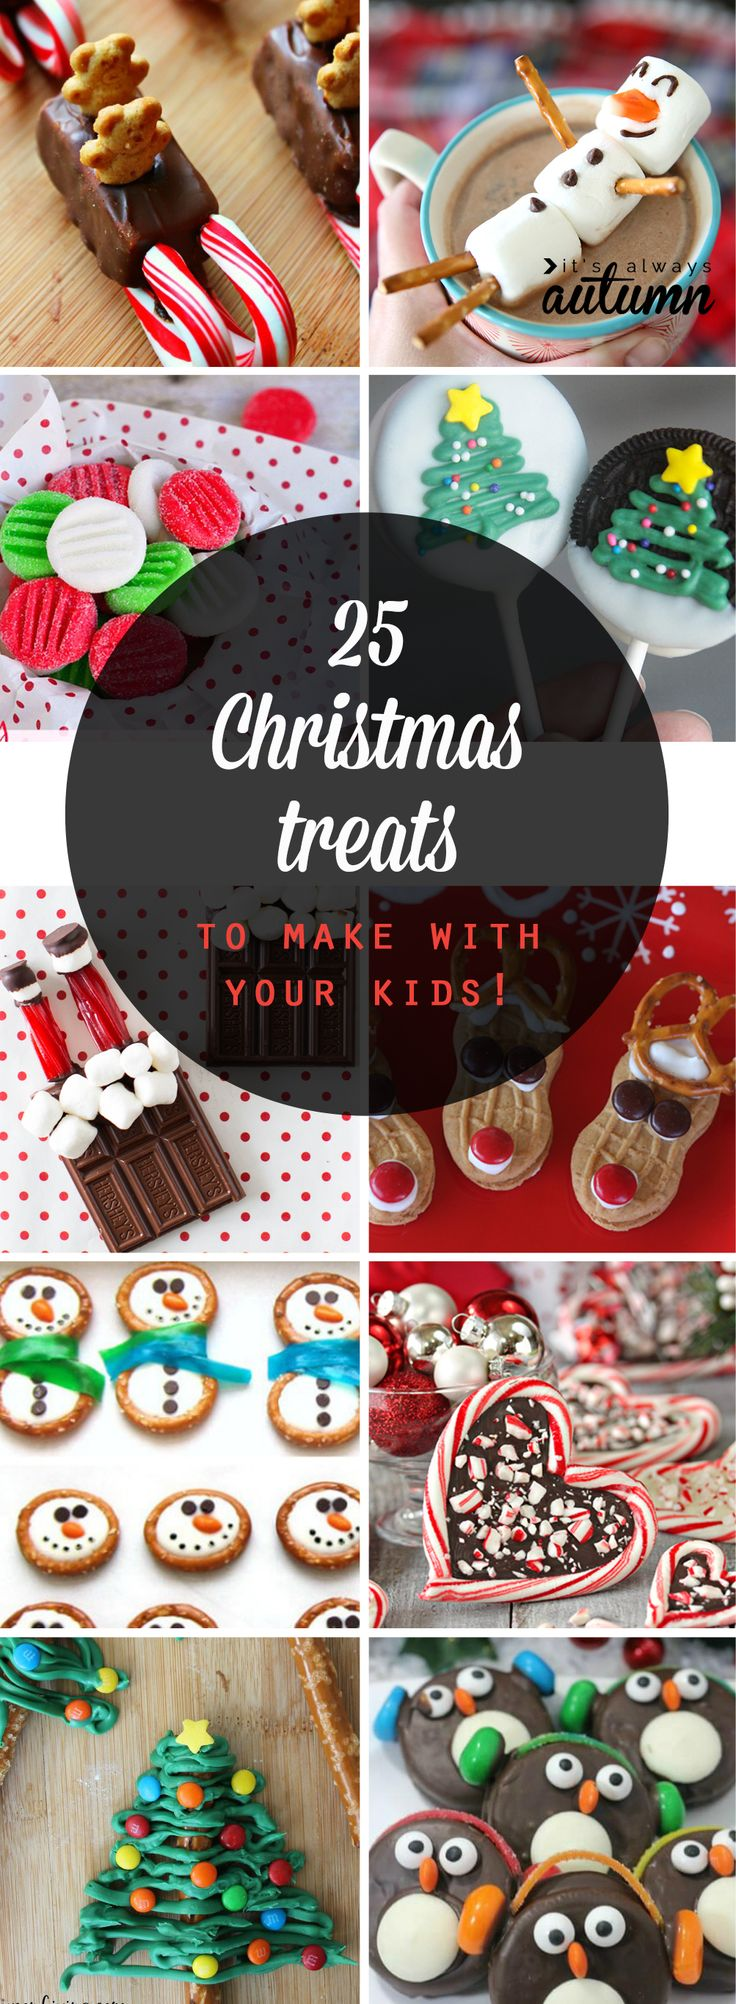 25 adorable Christmas treats to make with your kids | Christmas ...